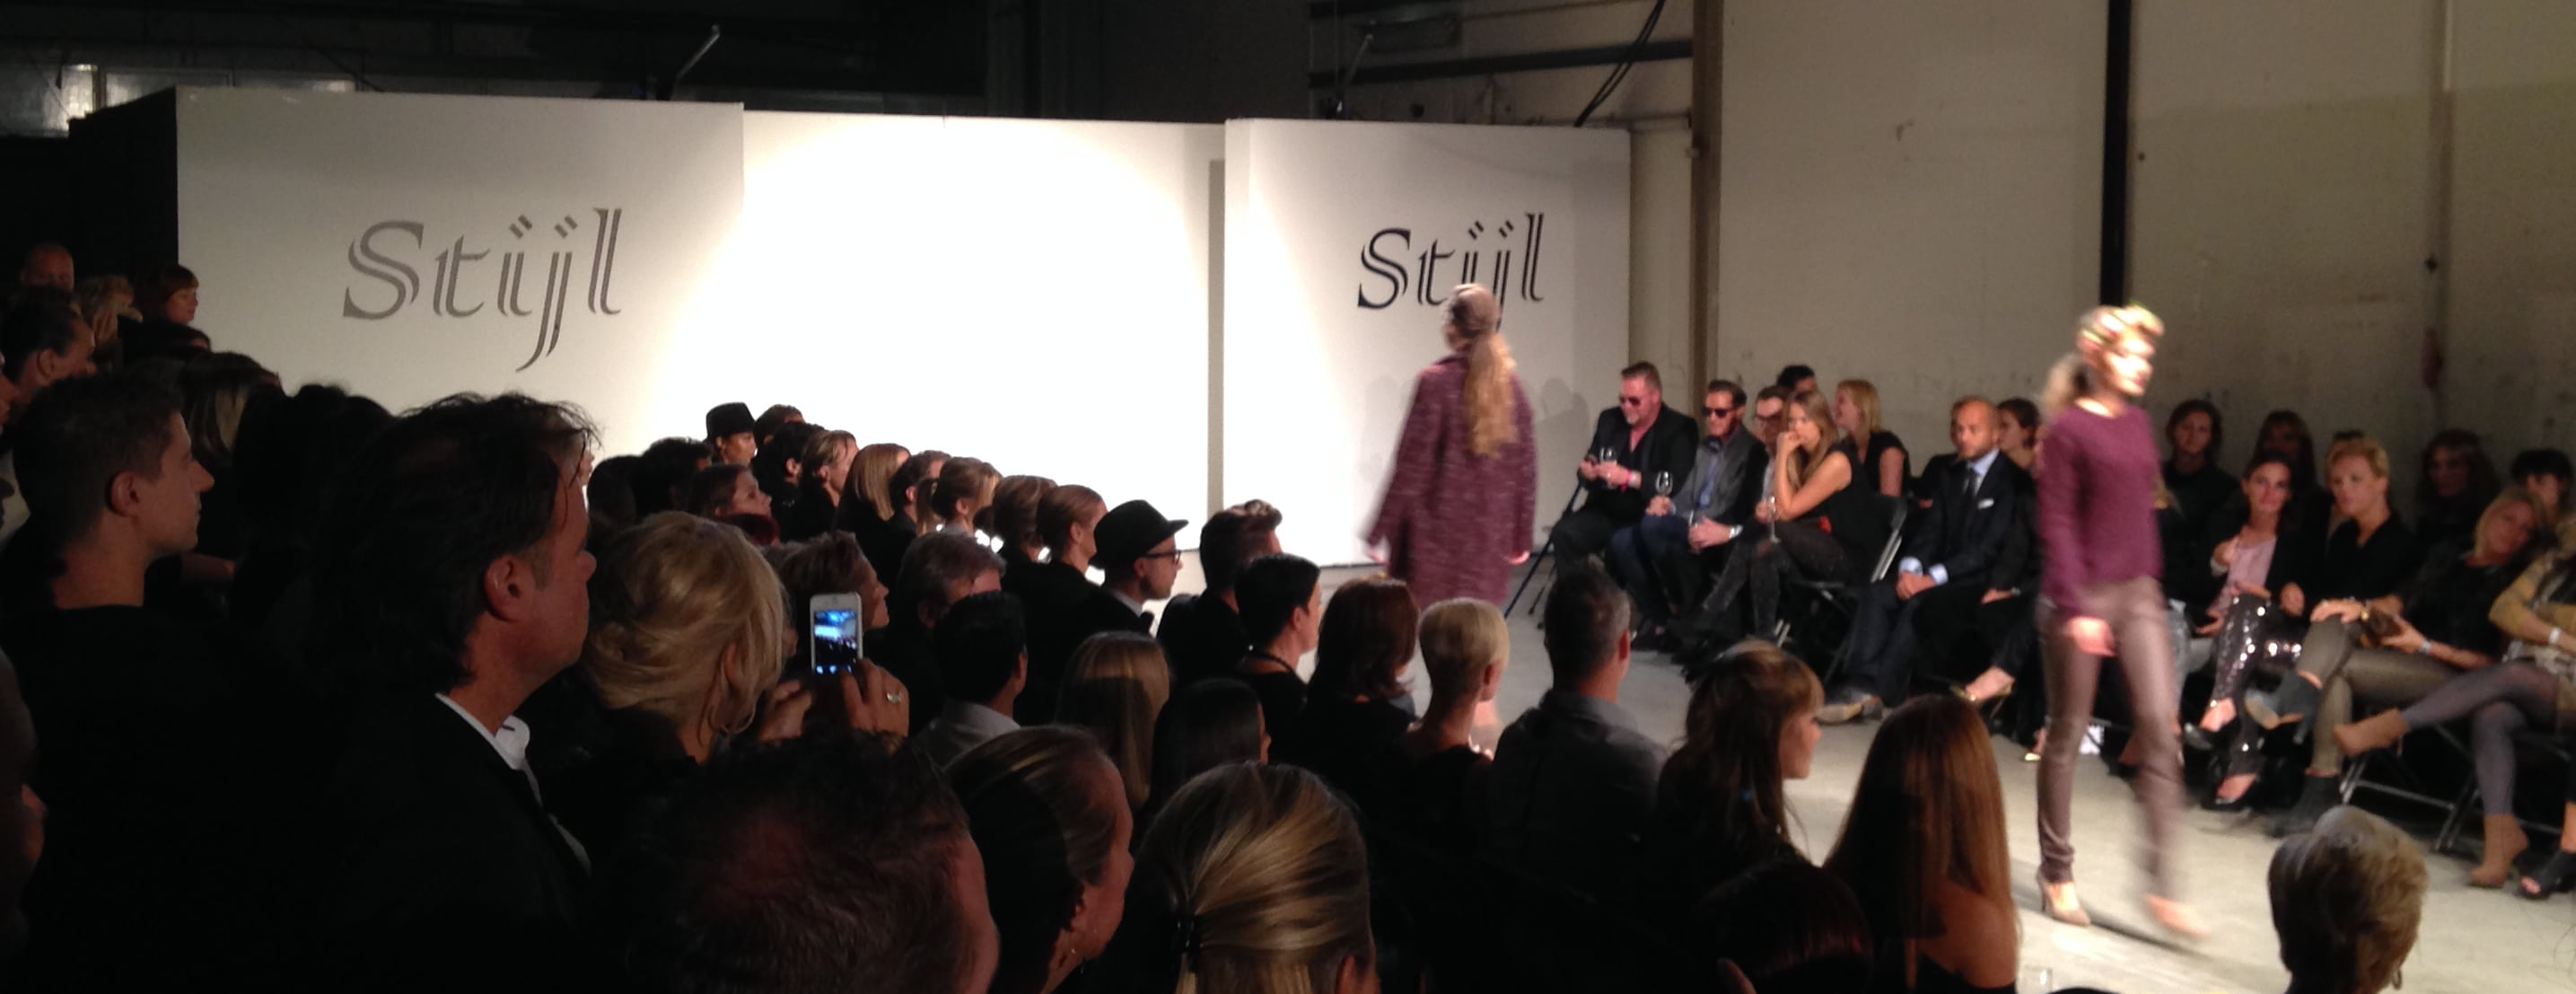 Stijl fashion event fashionshow en store vol scandinavische labels lovestohave - Scandinavische coktail ...